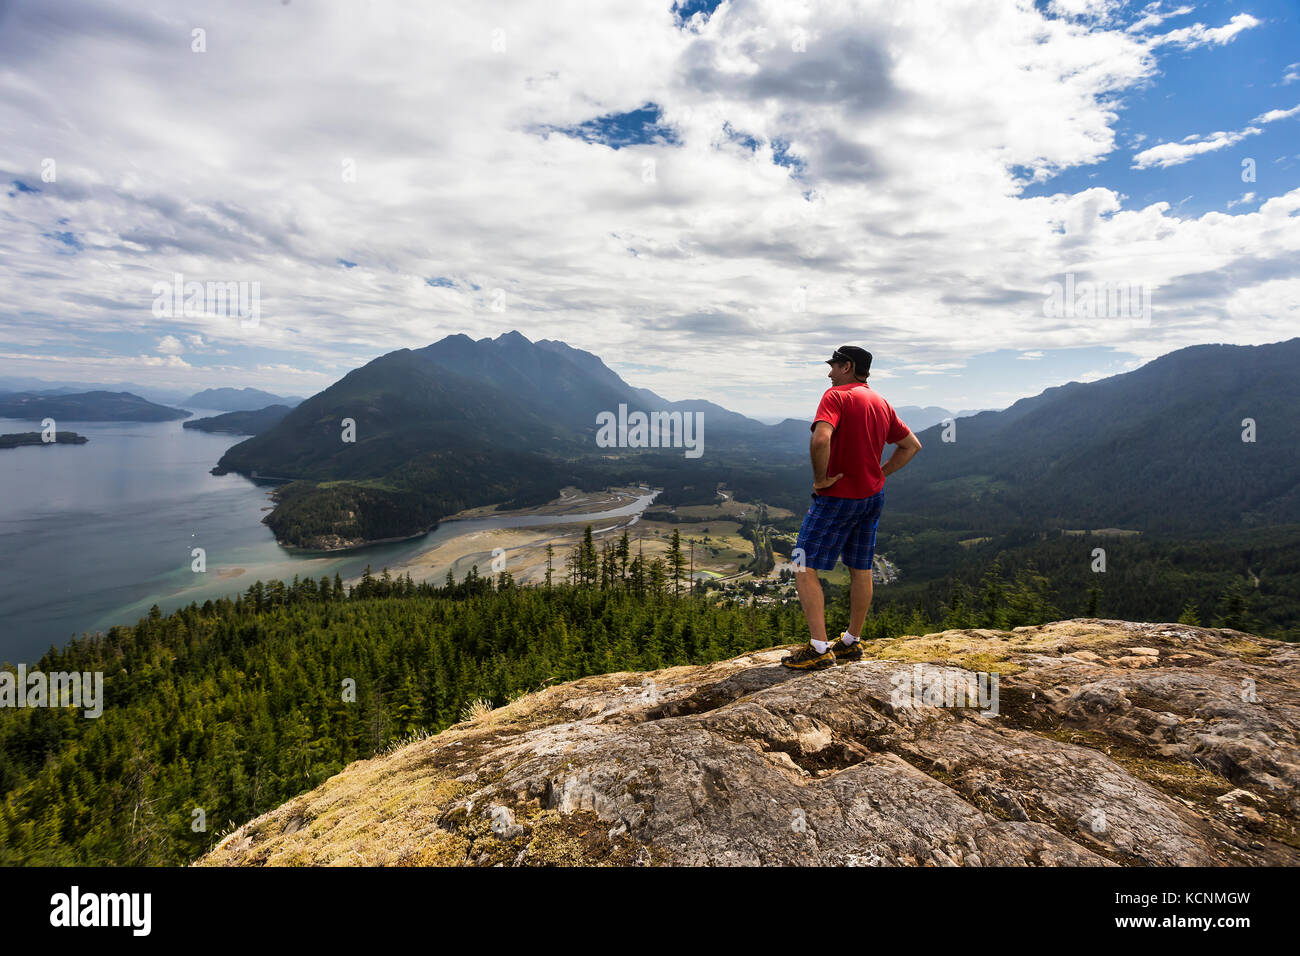 A hiker is rewarded with commanding views of Kelsey Bay, Johnstone strait and the Salmon River Estuary from a viewpoint - Stock Image